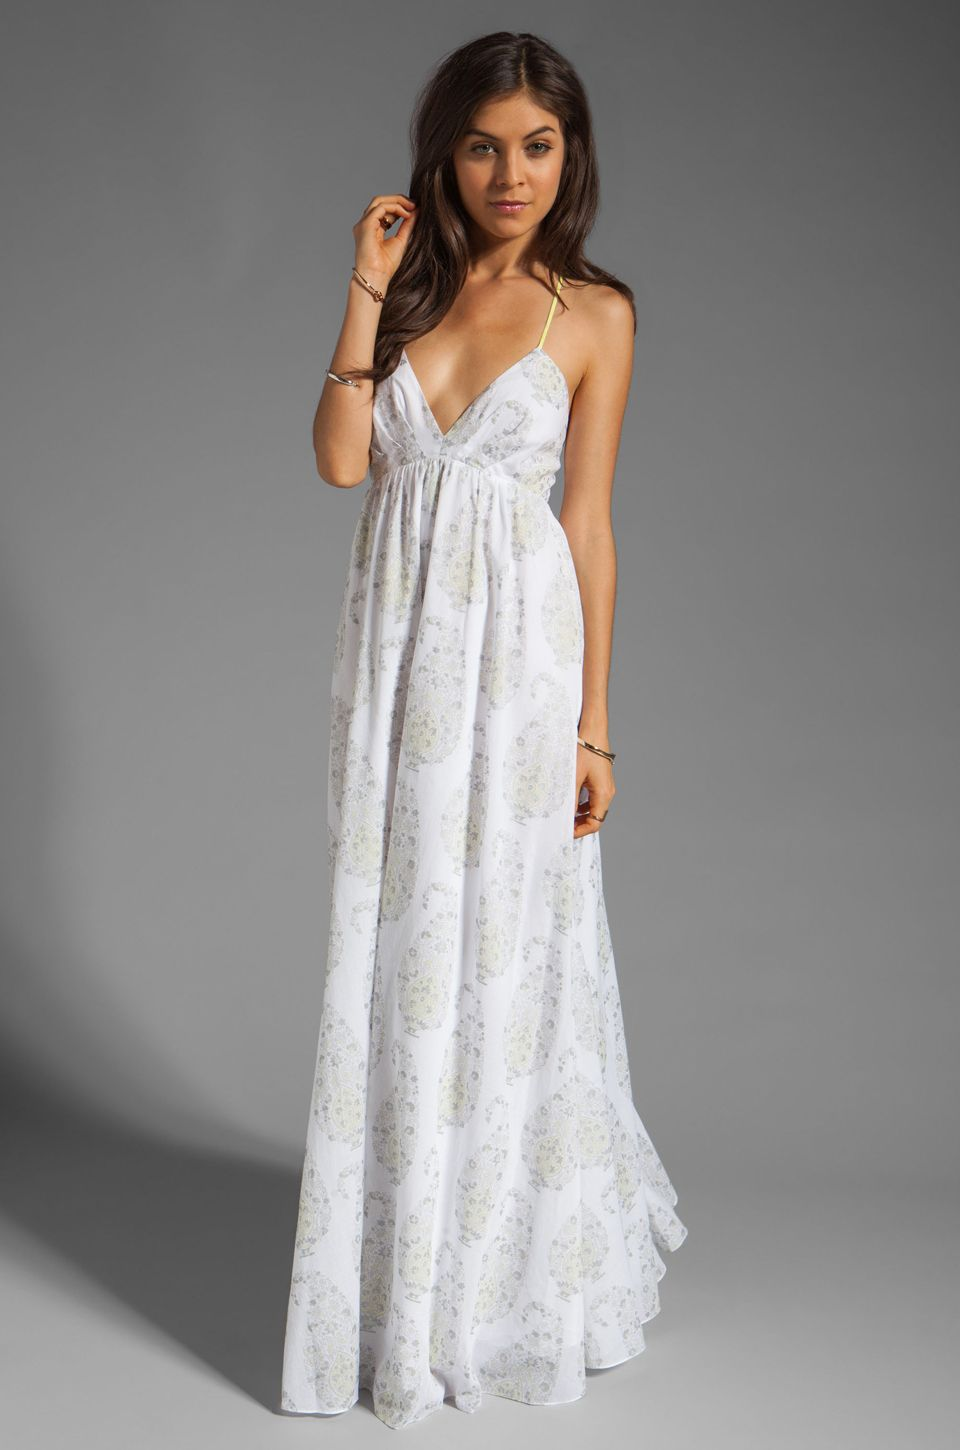 Rebecca taylor georgette maxi dress